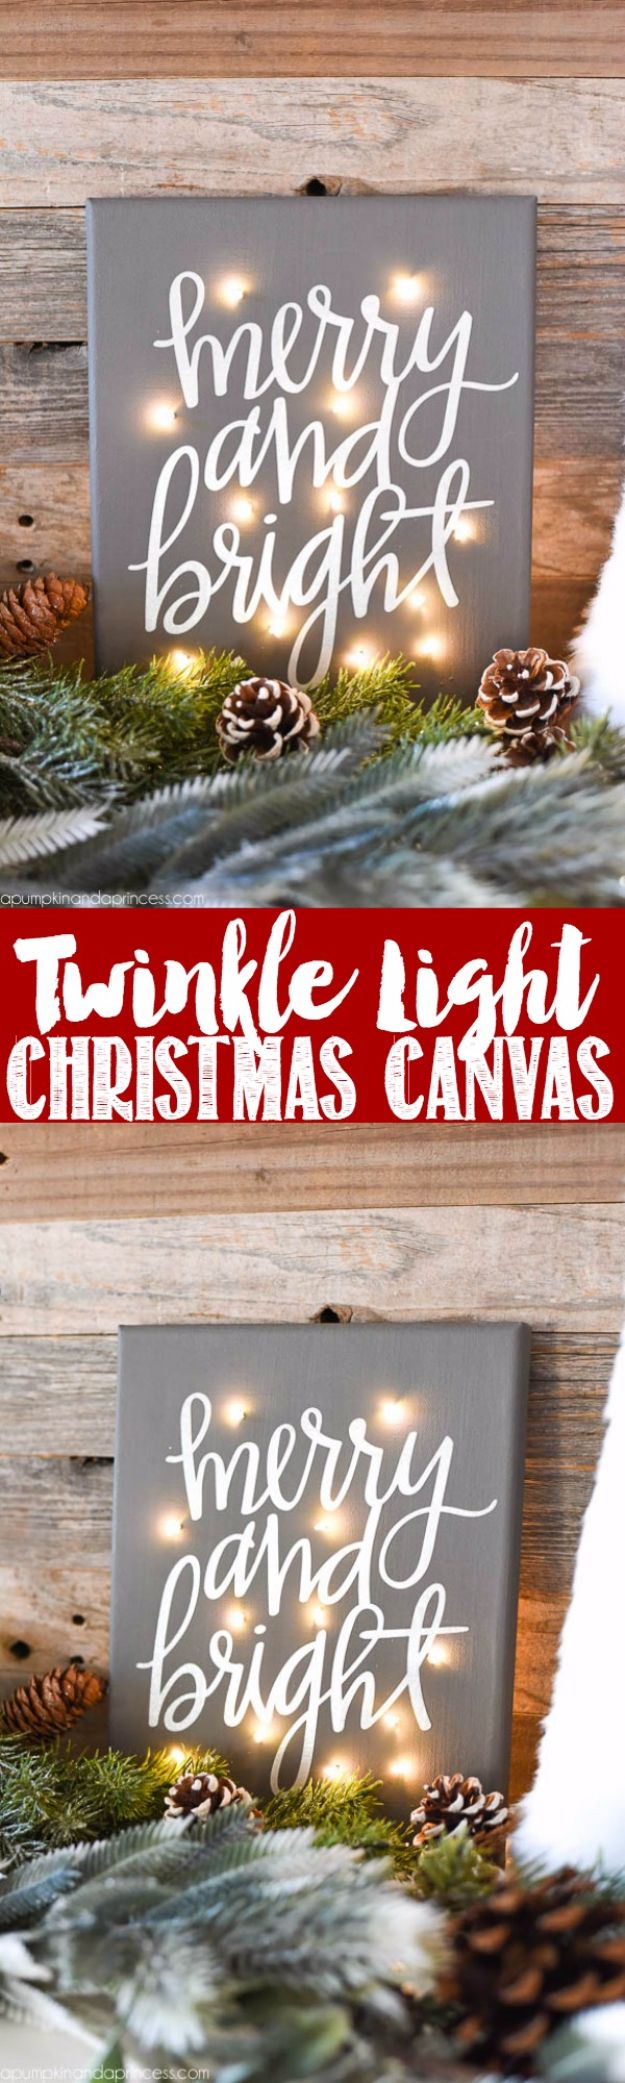 best Holiday Home images on Pinterest Christmas crafts